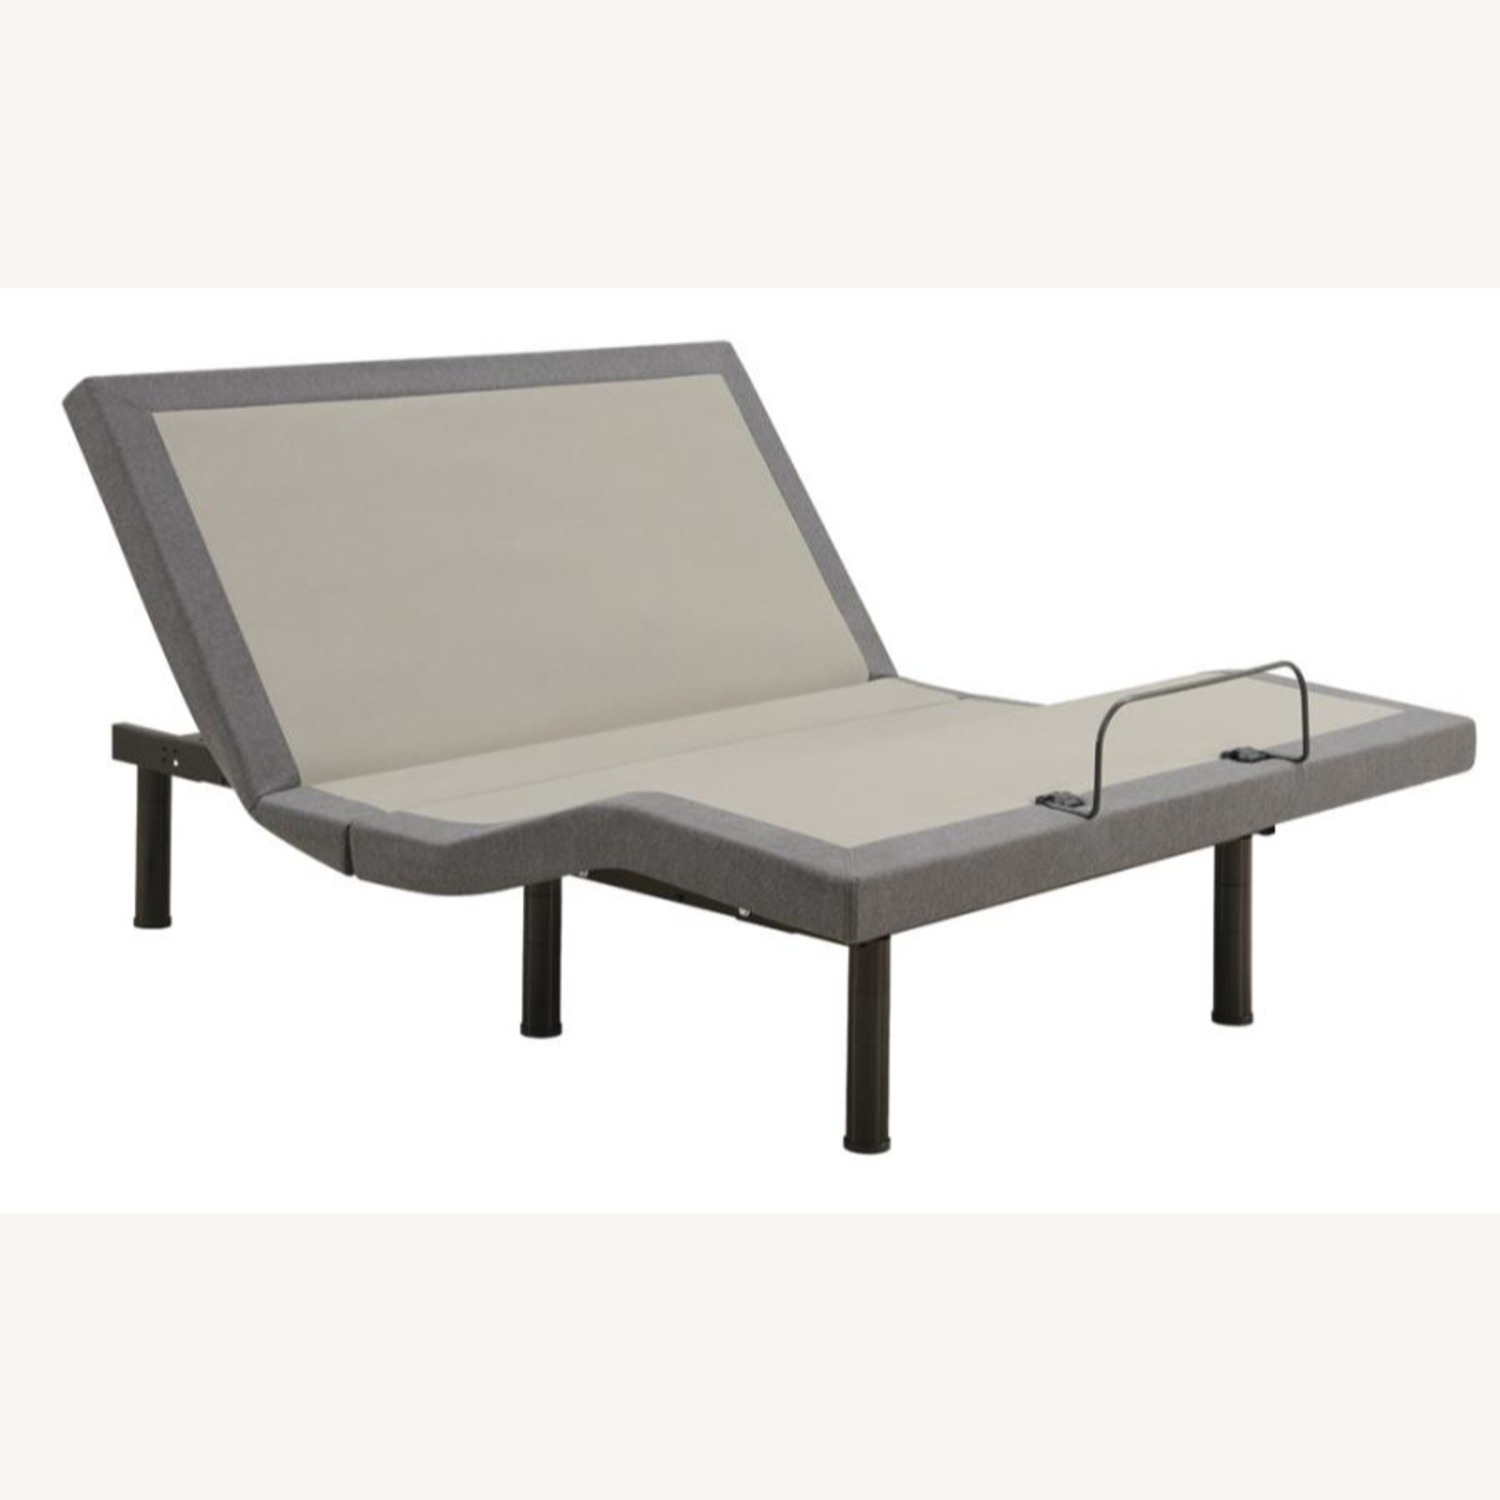 Queen Adjustable Bed Base In Grey Fabric Finish - image-1